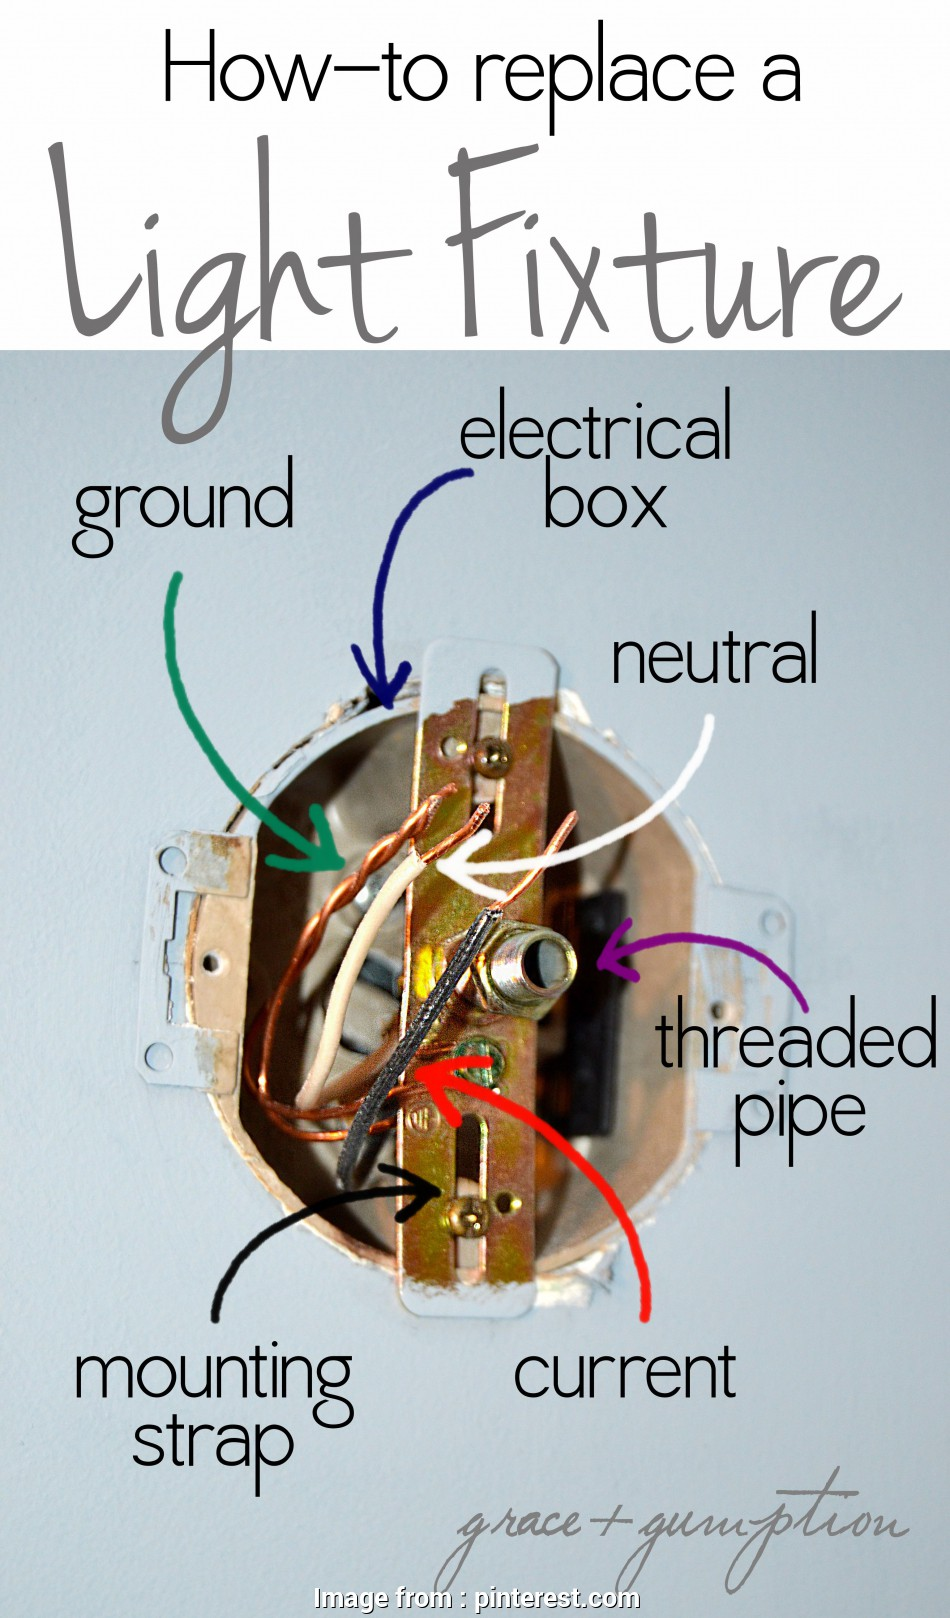 electrical wiring adding a light fixture How To Replace A Light Fixture by Grace + Gumption, Home How-To's Electrical Wiring Adding A Light Fixture Cleaver How To Replace A Light Fixture By Grace + Gumption, Home How-To'S Photos